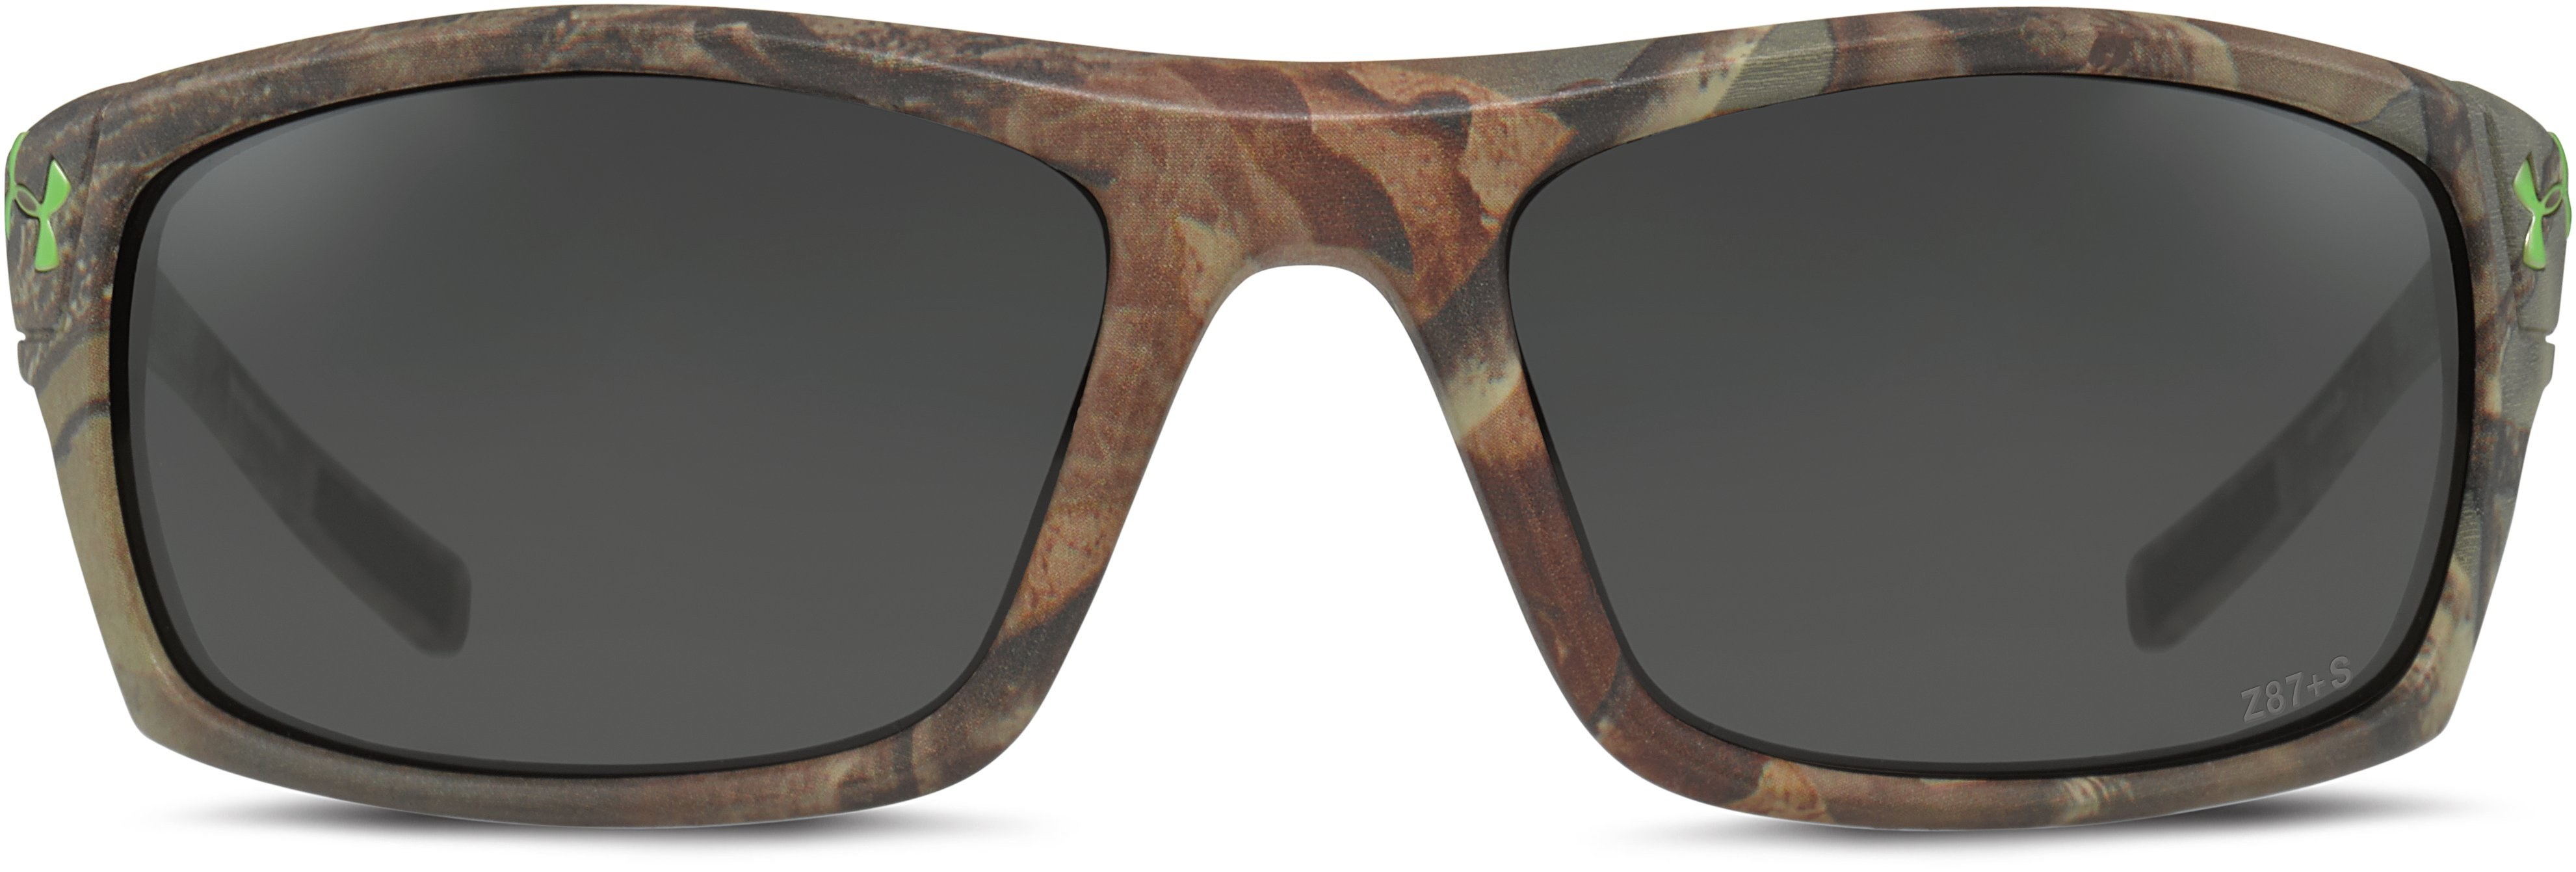 UA Keepz Camo Sunglasses, Realtree AP